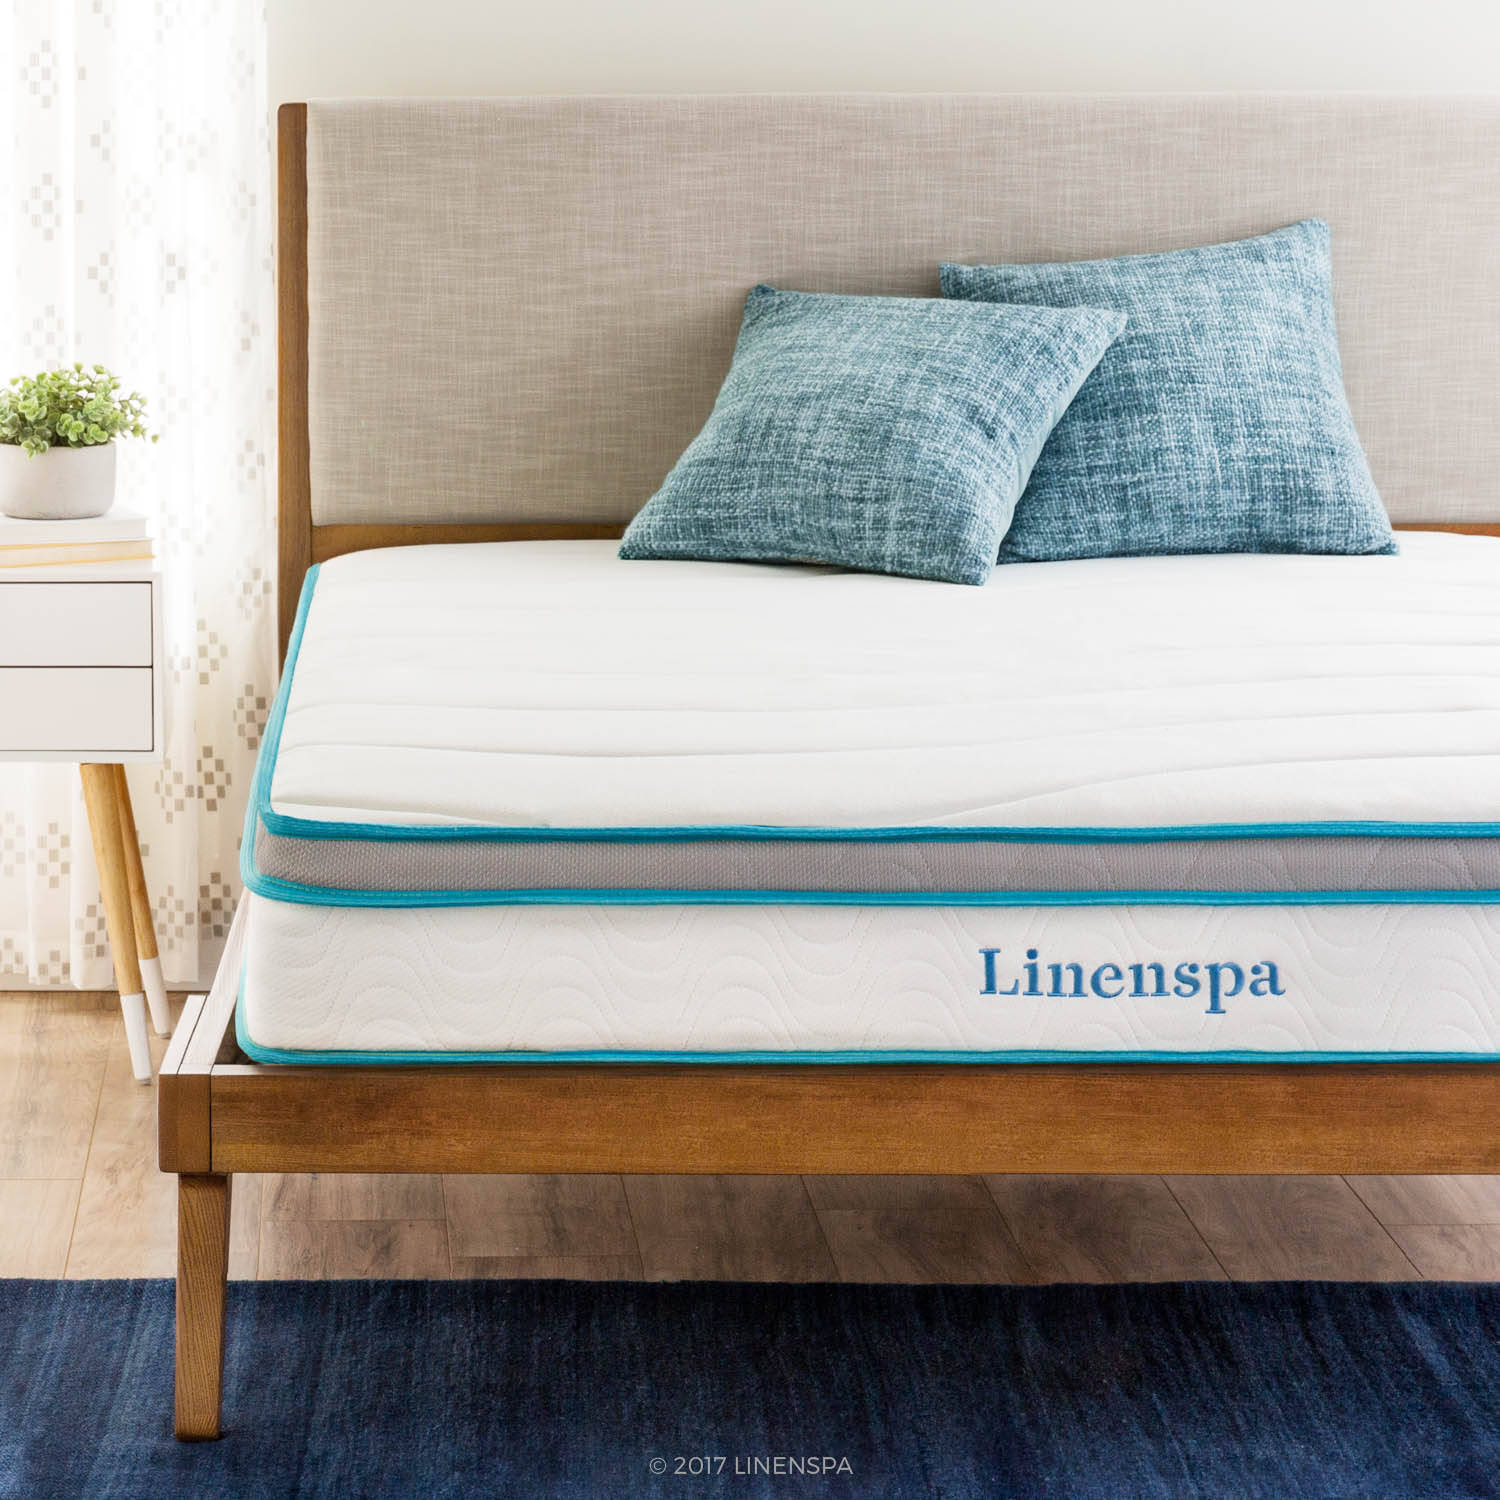 "Linenspa 8"" Spring and Memory Foam Hybrid Mattress by CVB Inc."